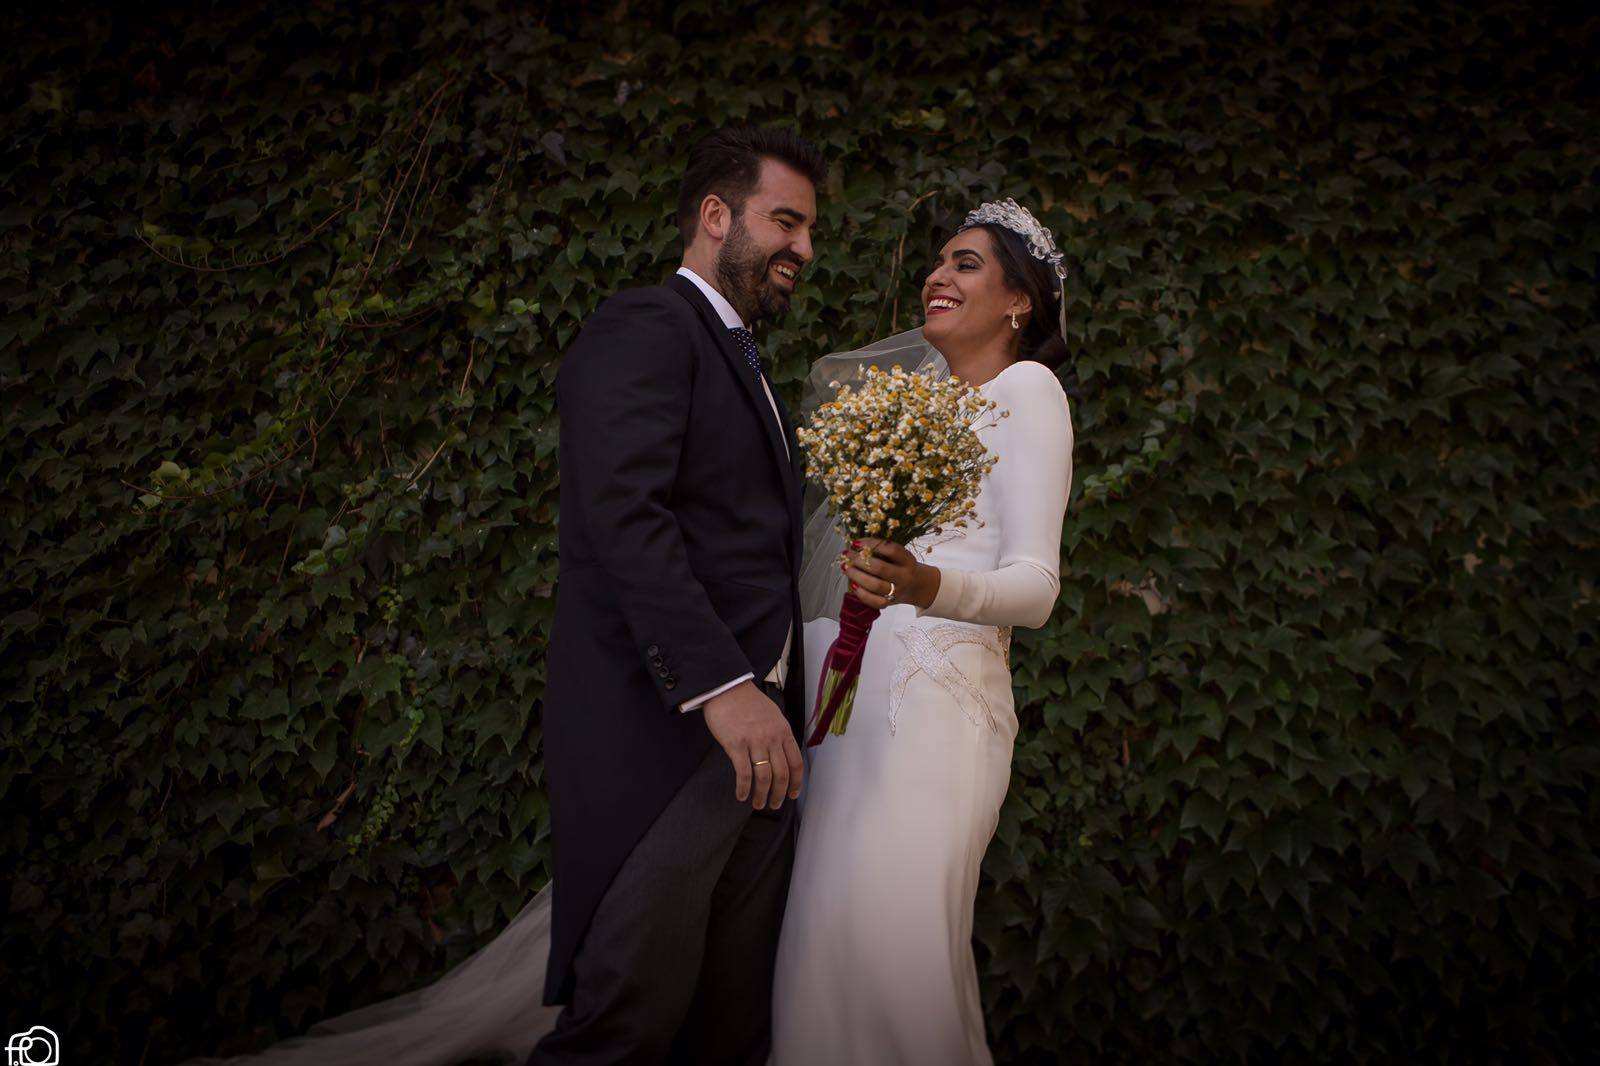 descubre en el blog de bodas wedding ideas la boda de Loubna y Carlos